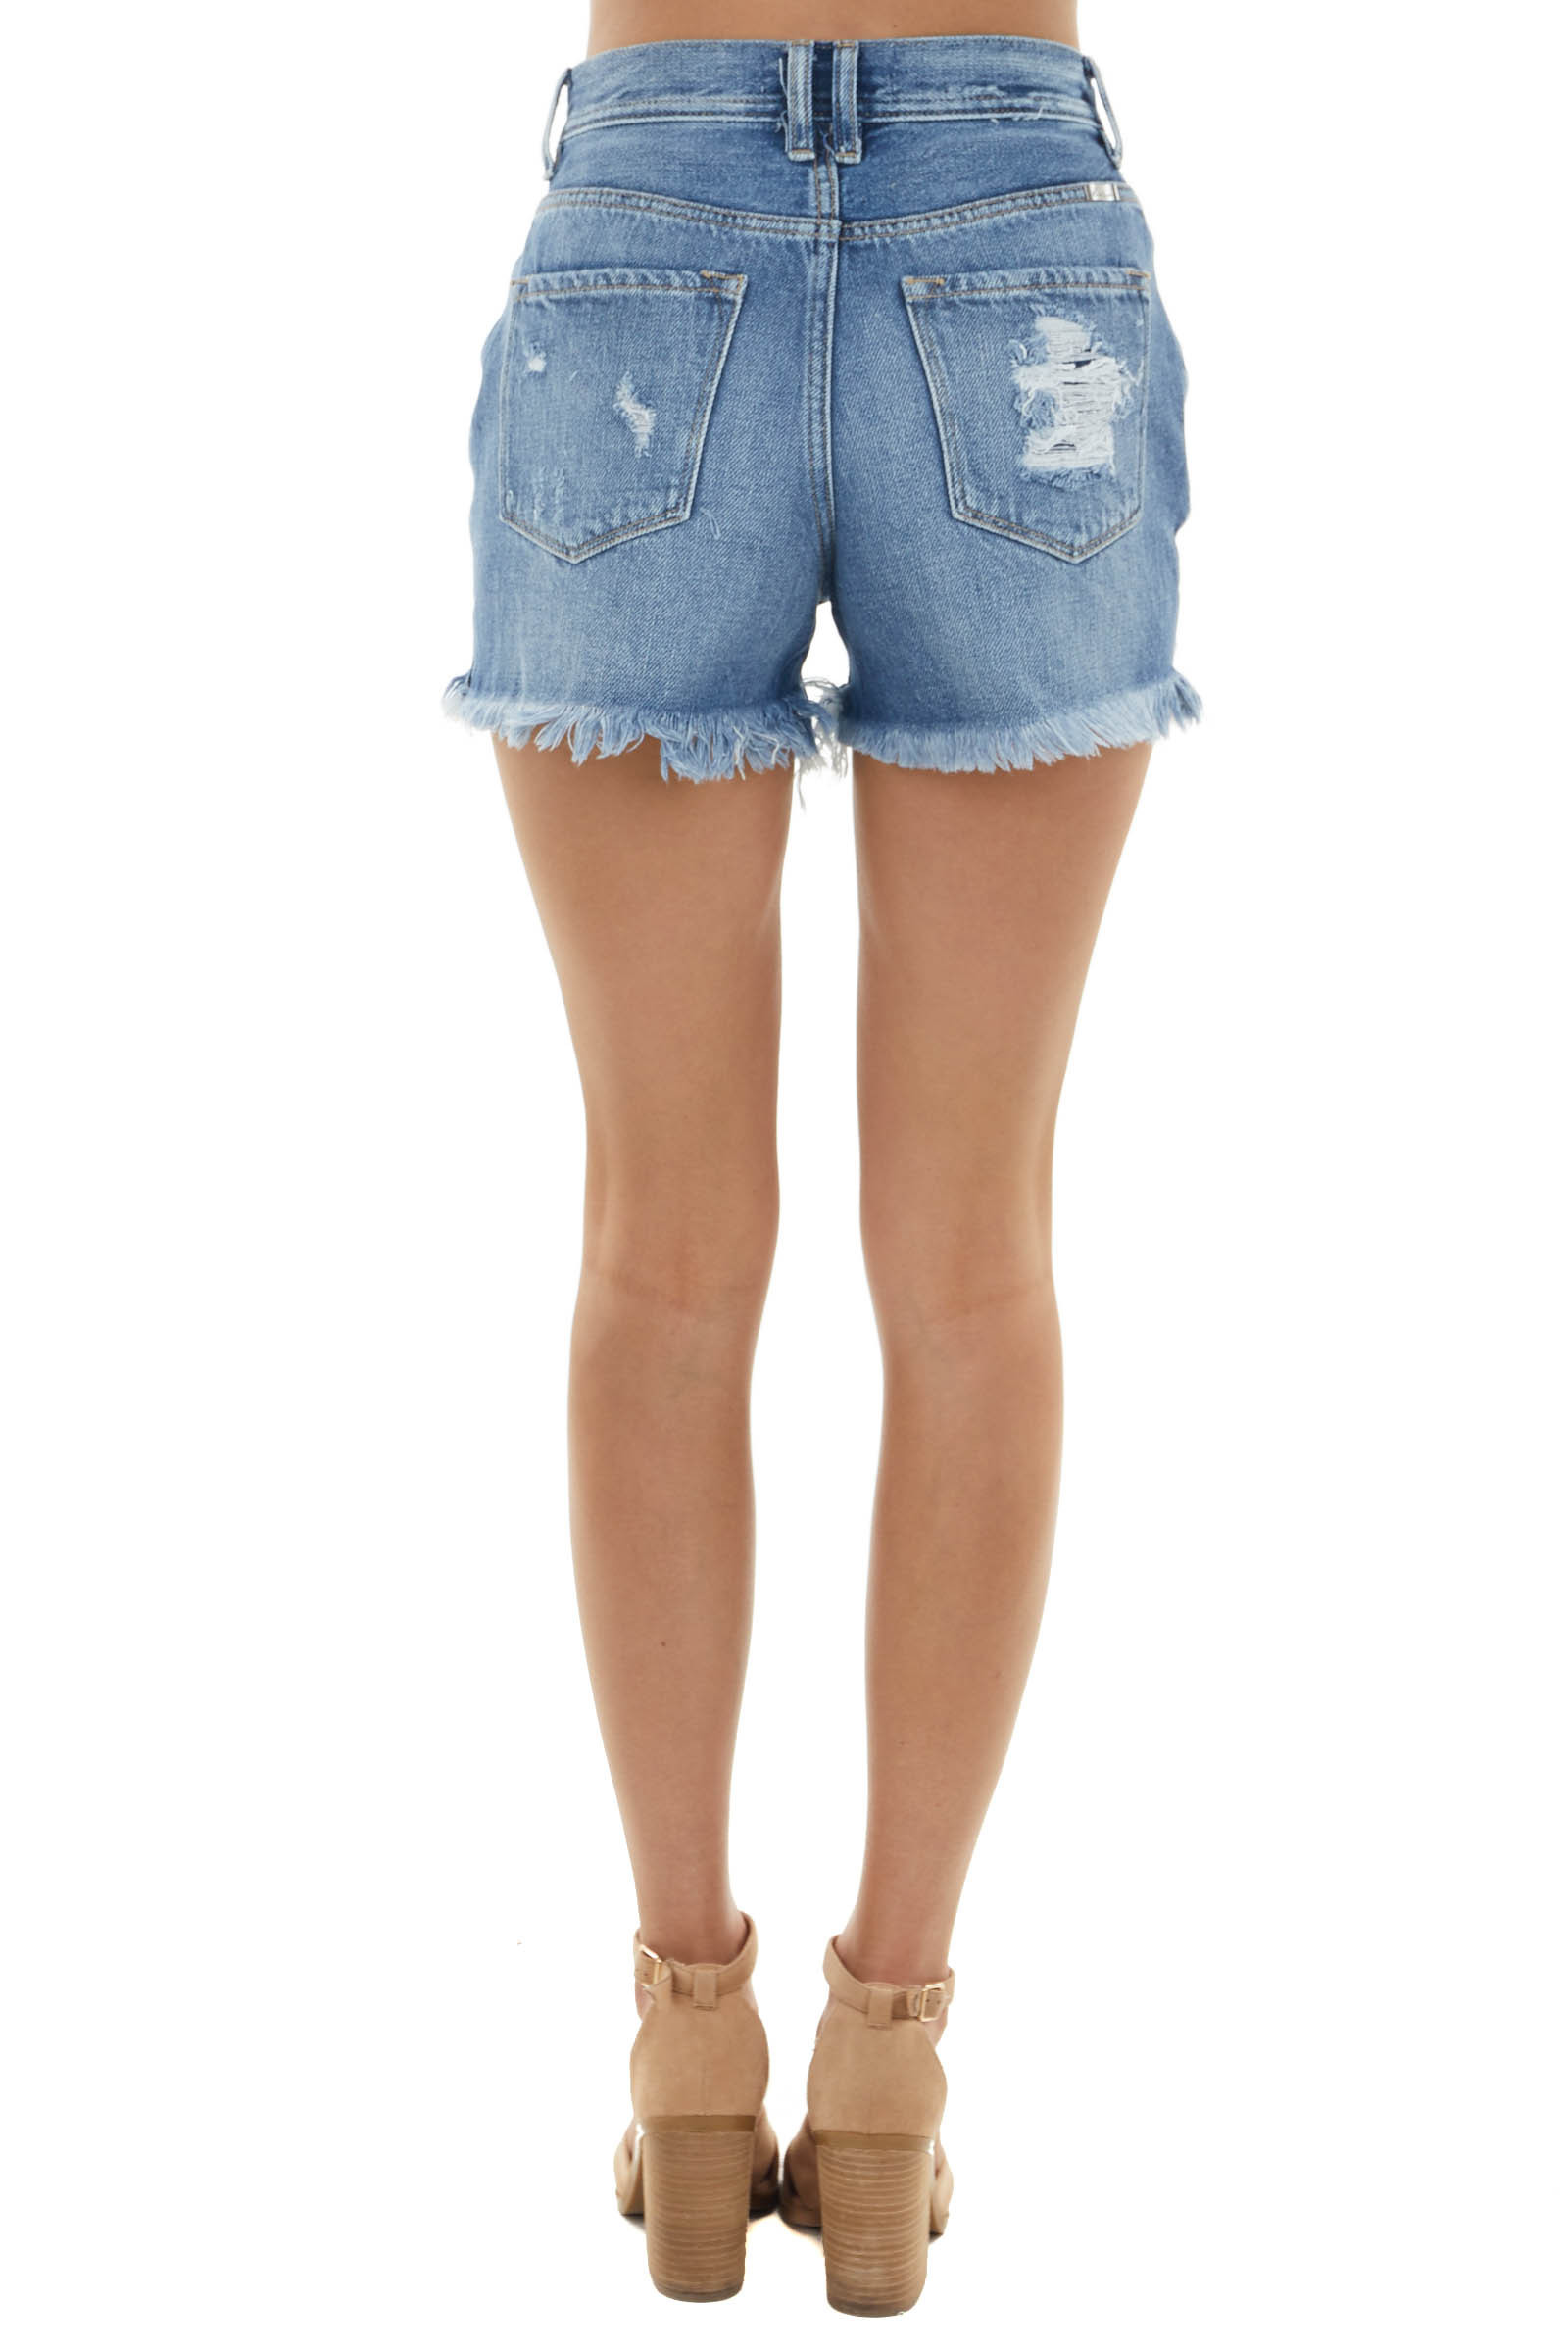 Medium Wash High Rise Button Up Shorts with Distressing